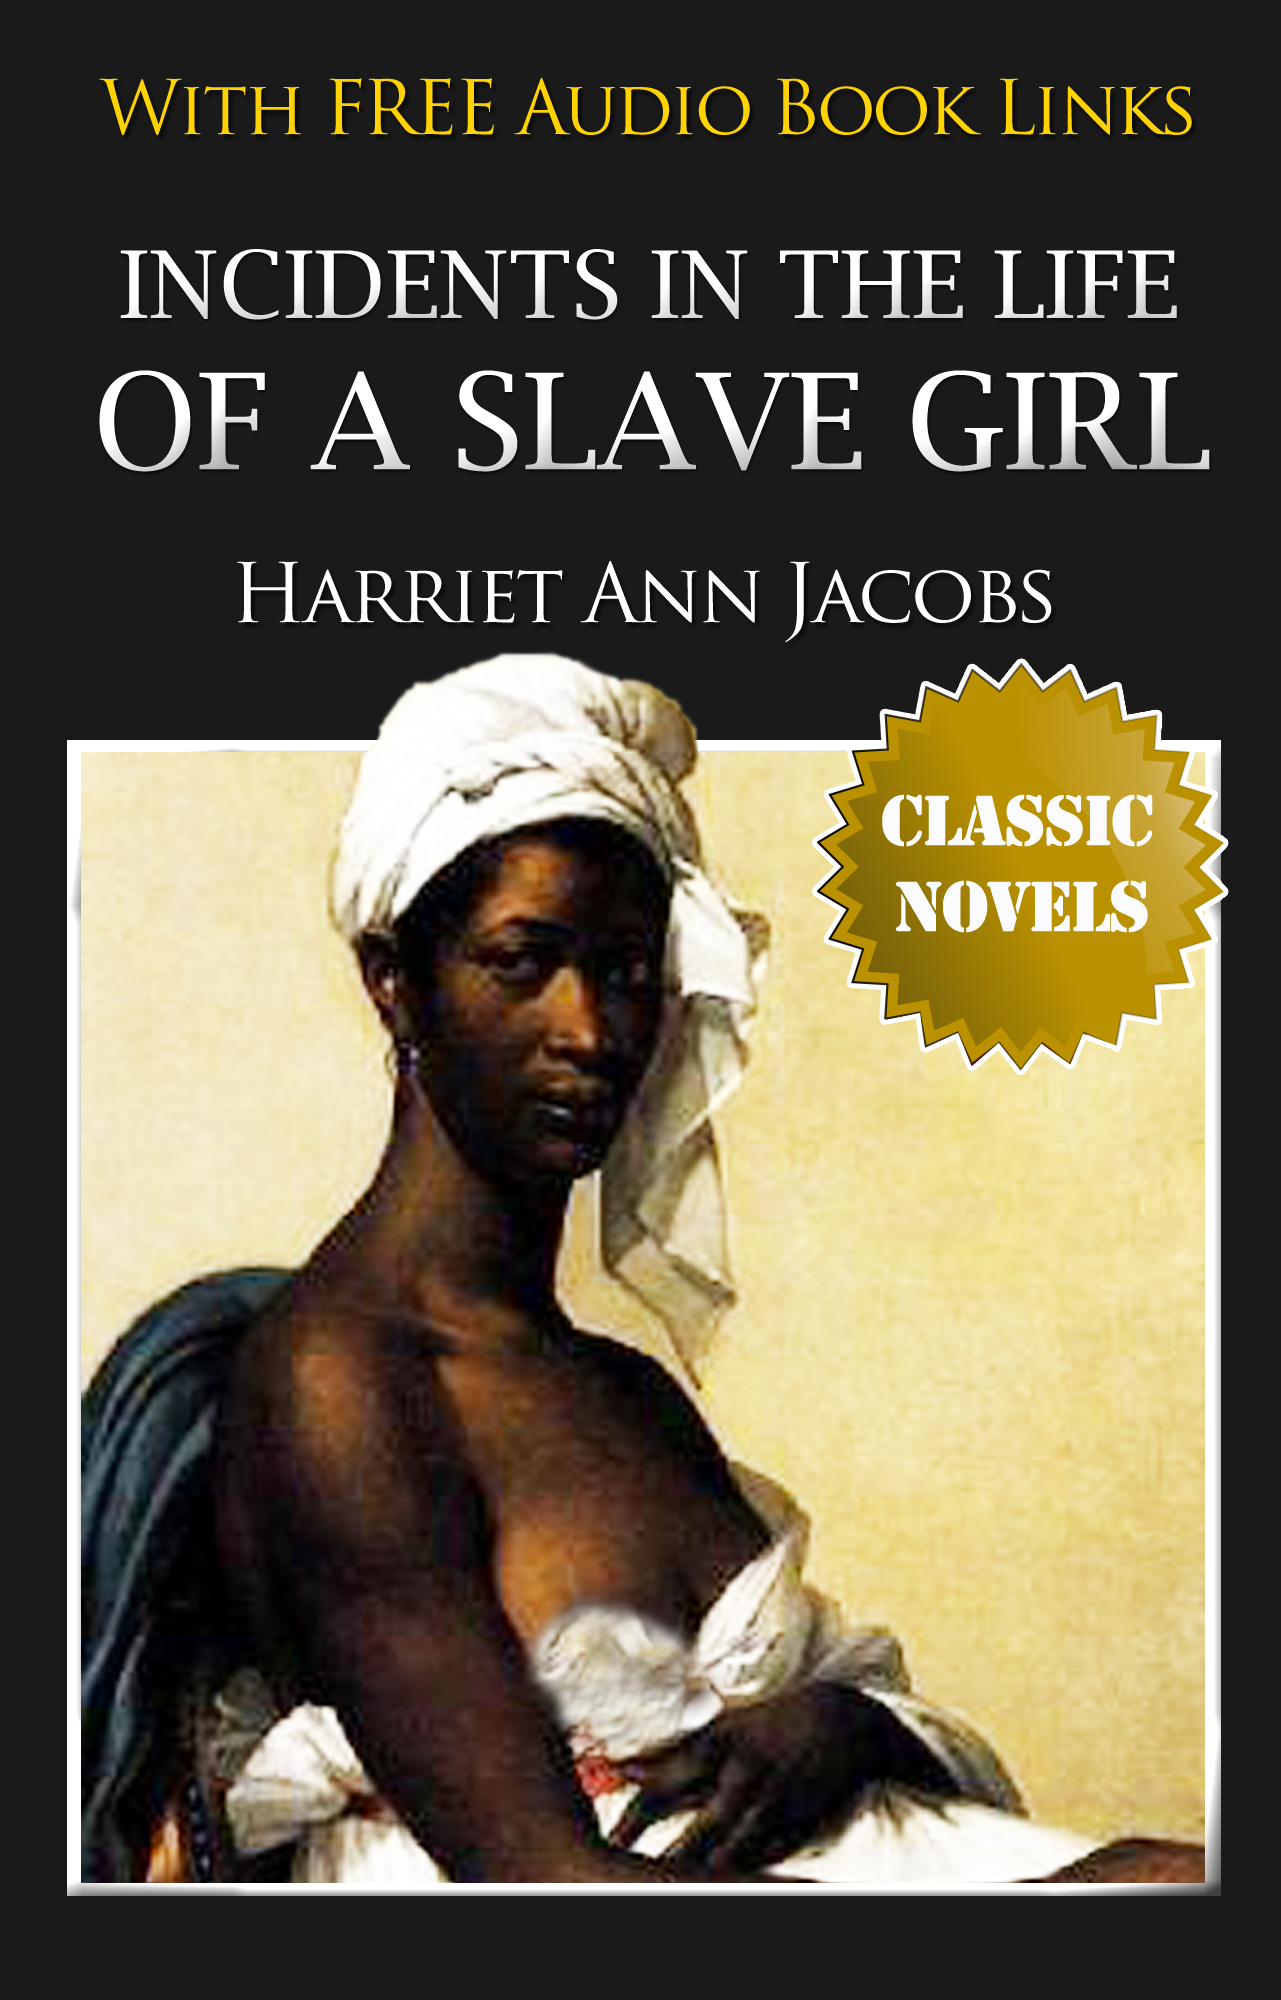 INCIDENTS IN THE LIFE OF A SLAVE GIRL Classic Novels: New Illustrated [Free Audio Links]